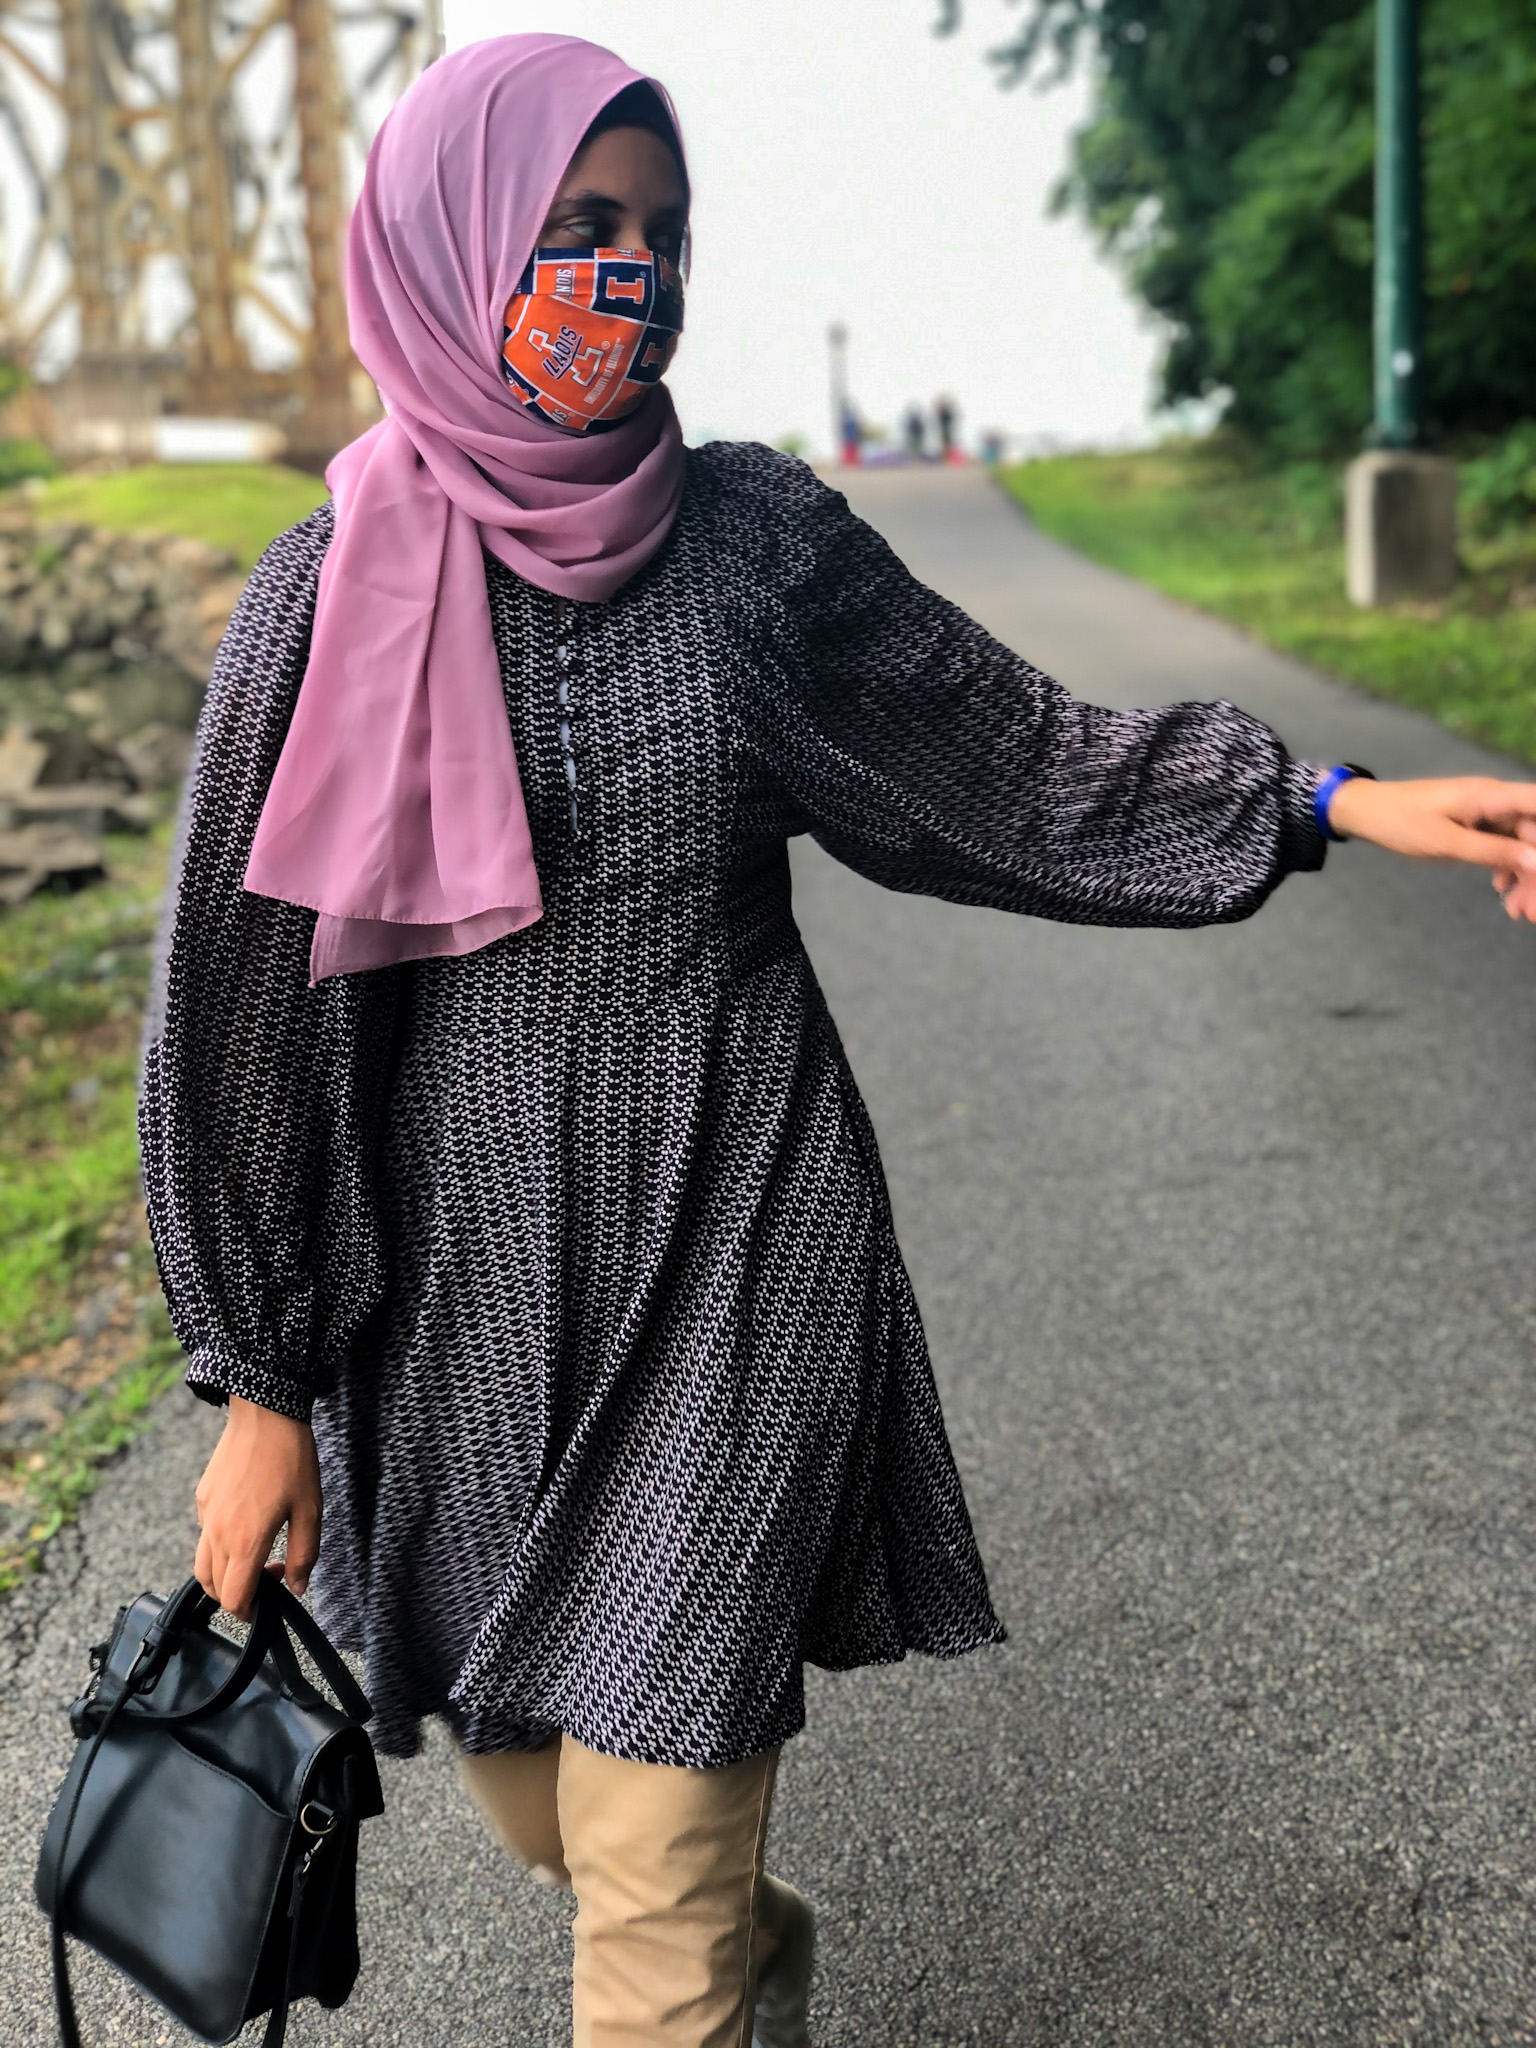 Sahara walking, black bag in right hand, pink scarf, pointing with left hand to the left